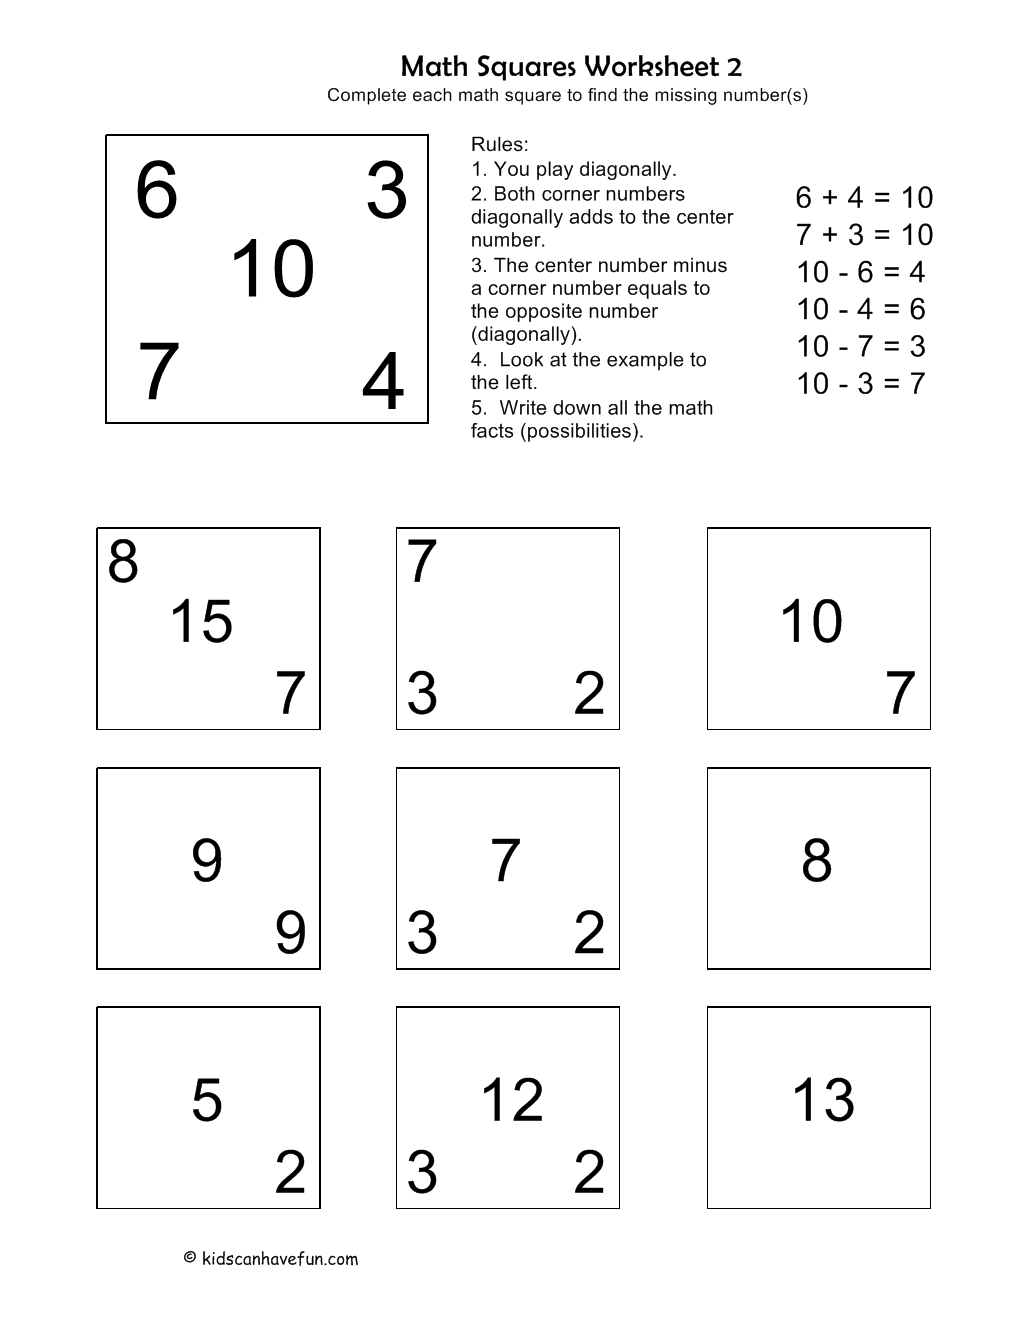 Math Squares Worksheet. Complete each math square to find the ...